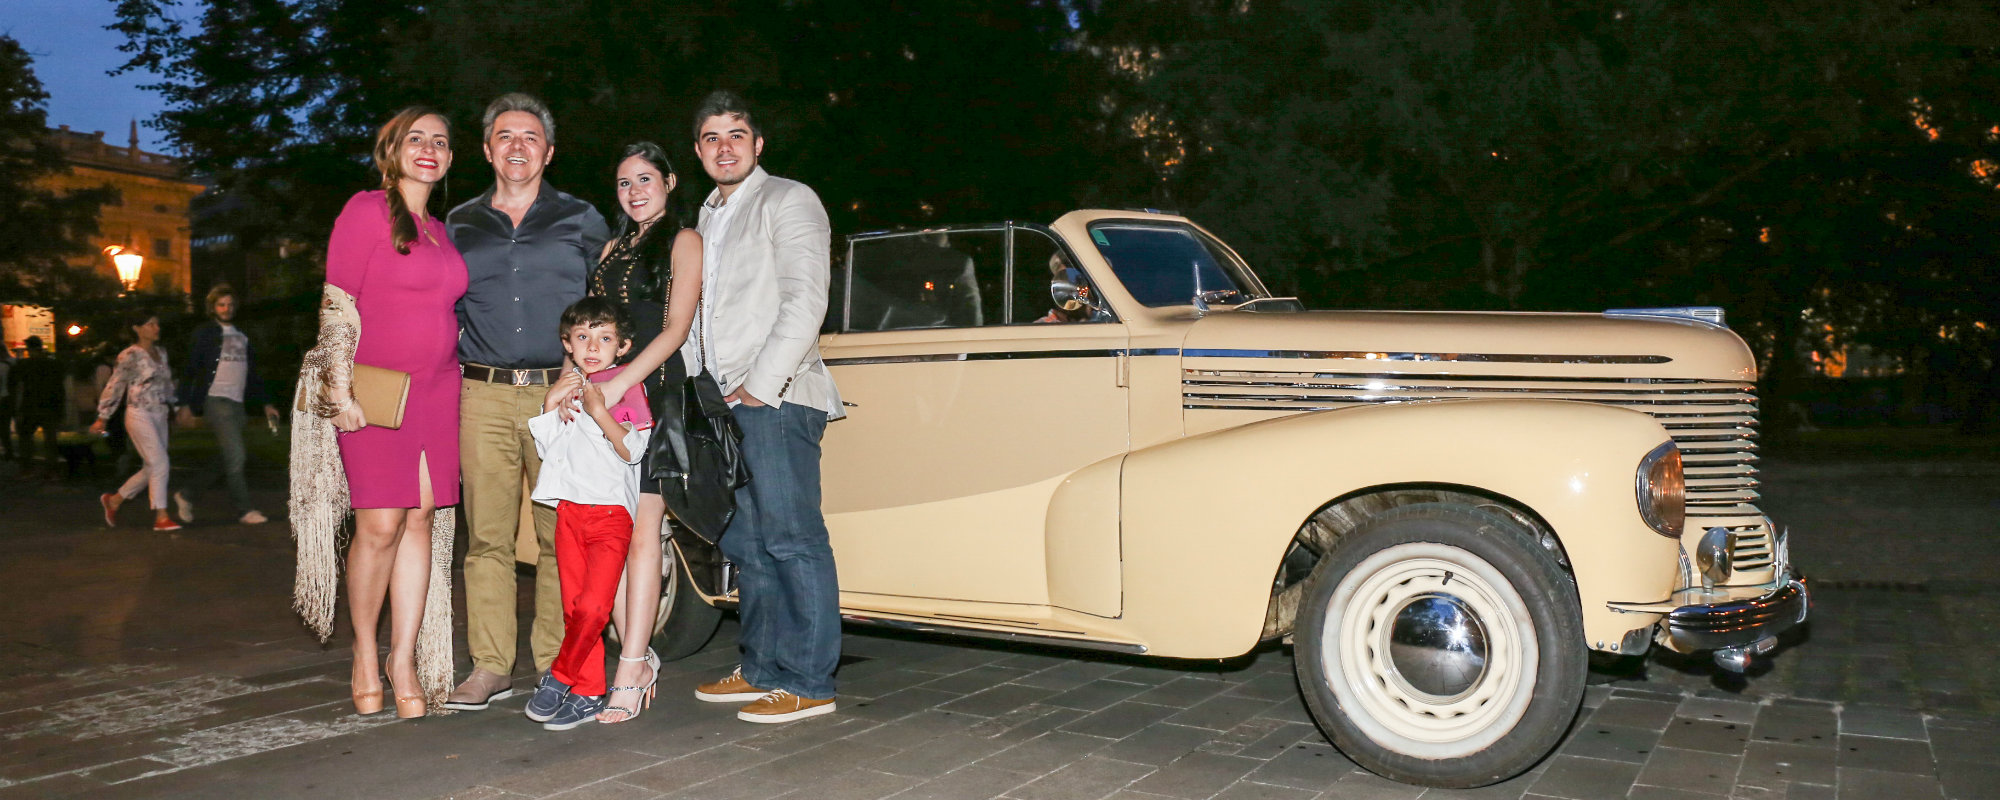 vintage car family